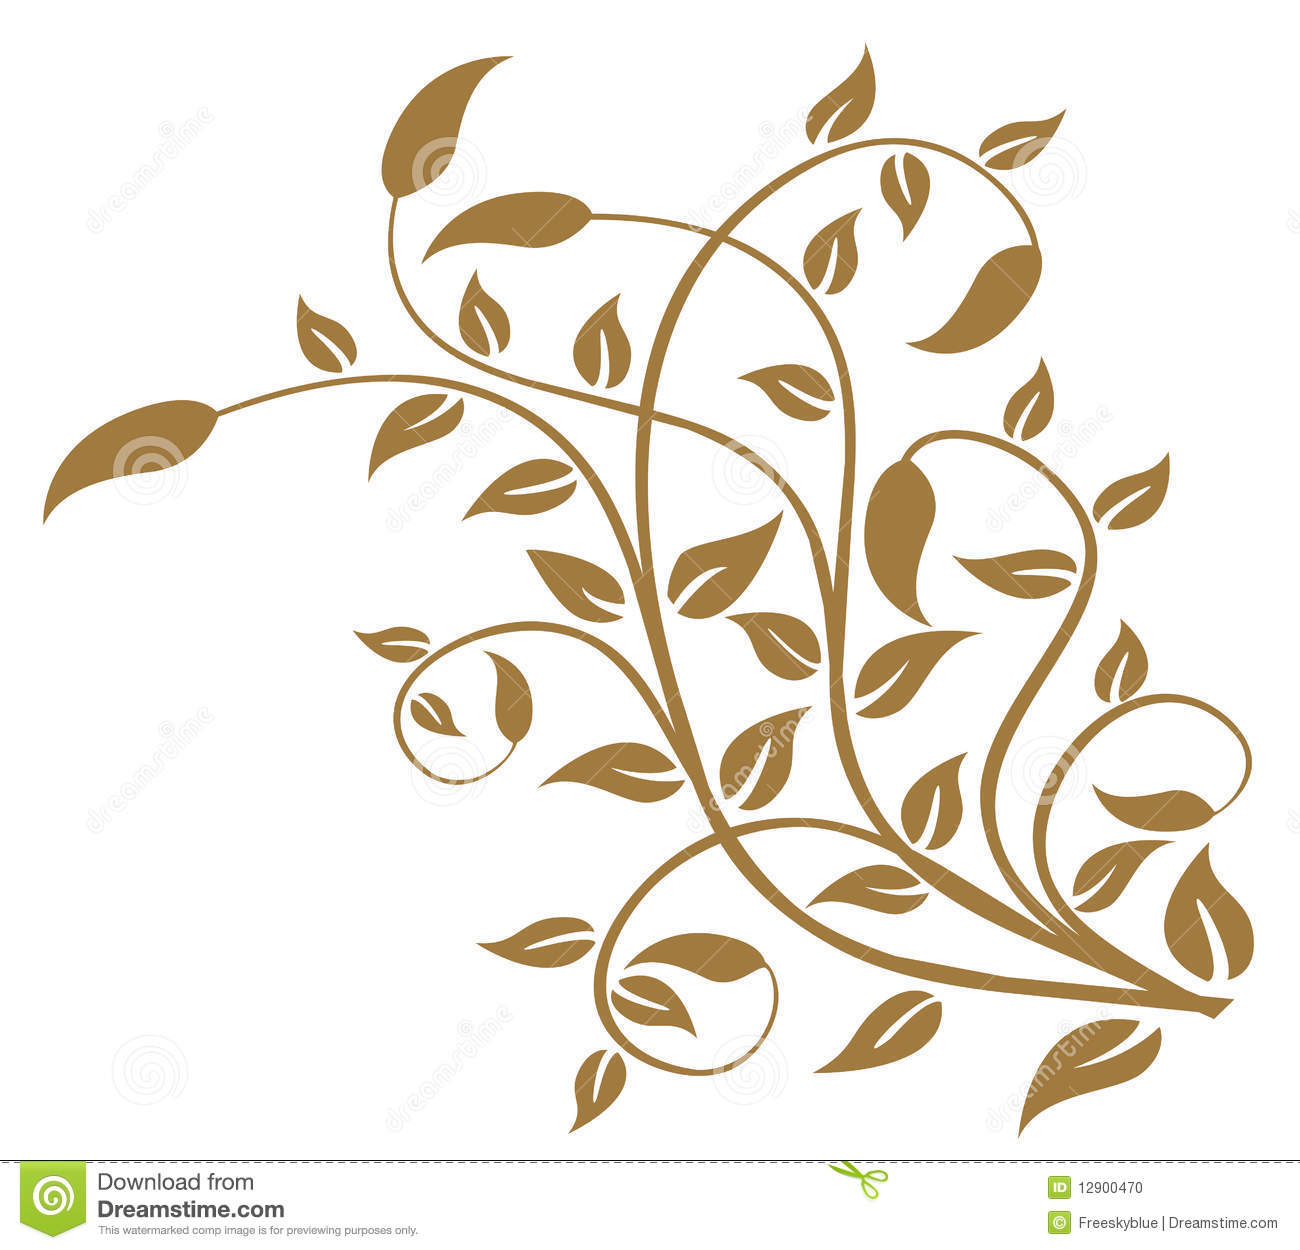 Leaves And Vines Pattern Stock Photo - Image: 12900470